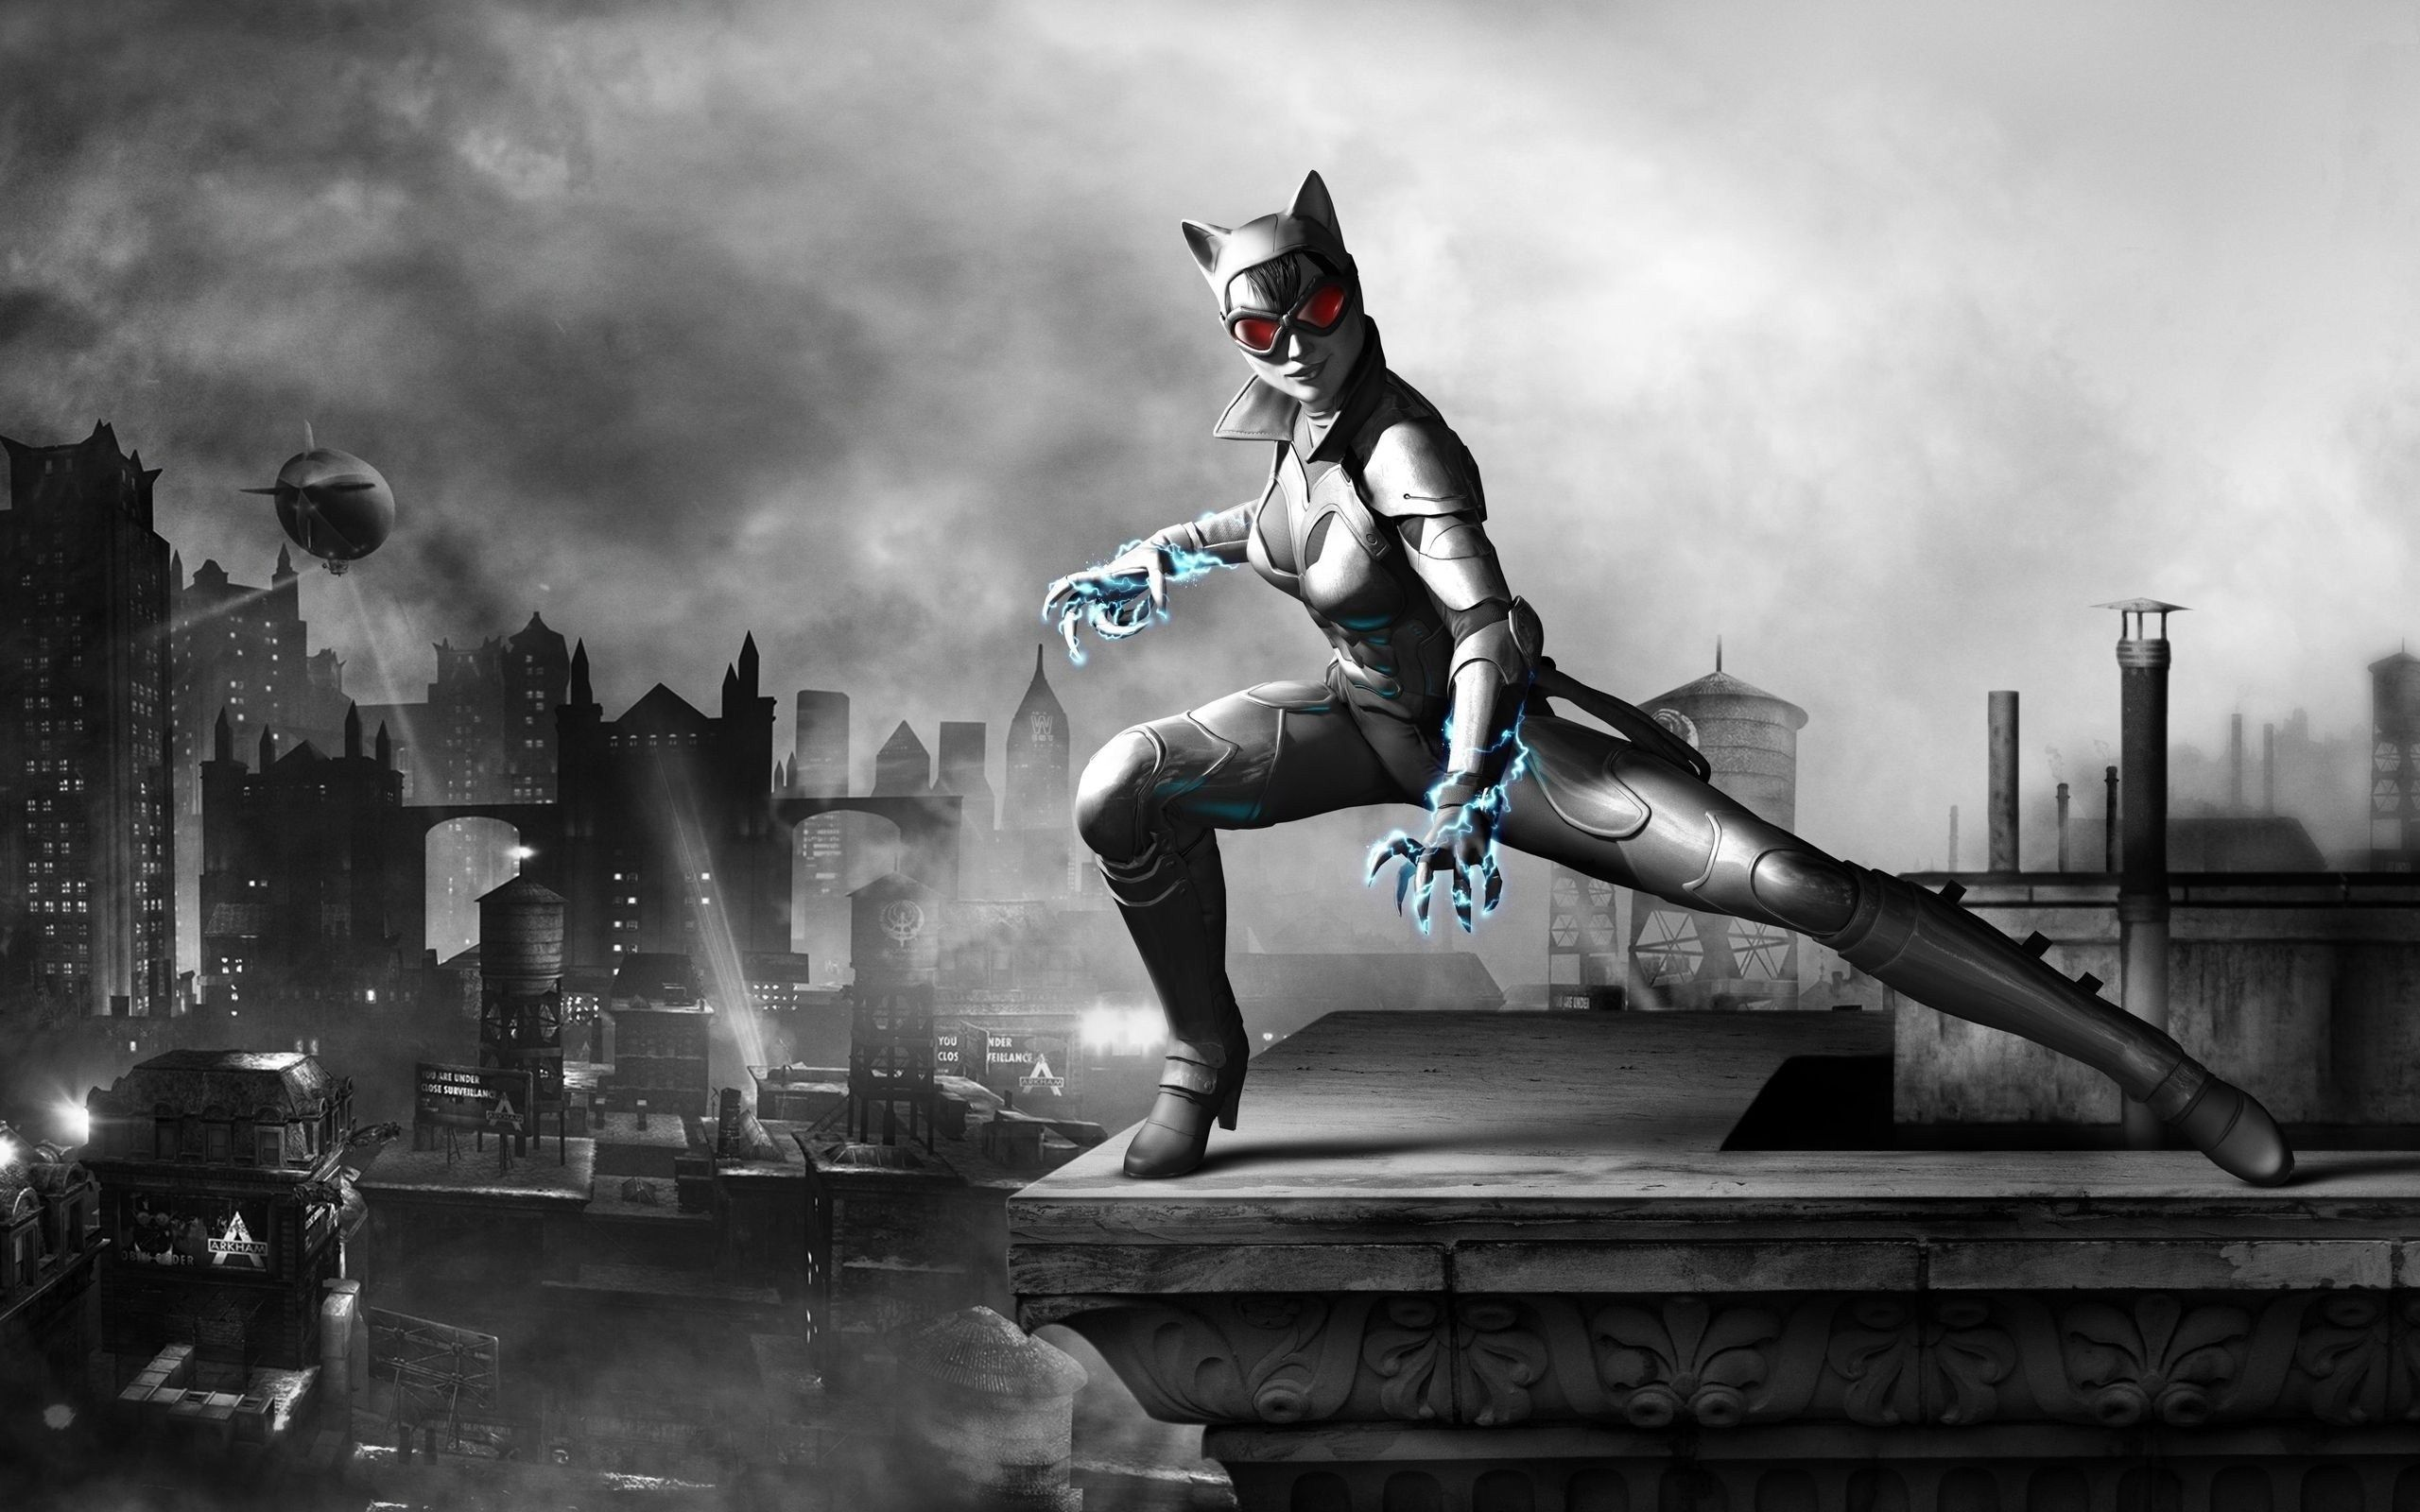 High Definition 2560x1600 Batman Arkham City Game Catwoman Hd Background Wallpaper Walkthrough Riddles